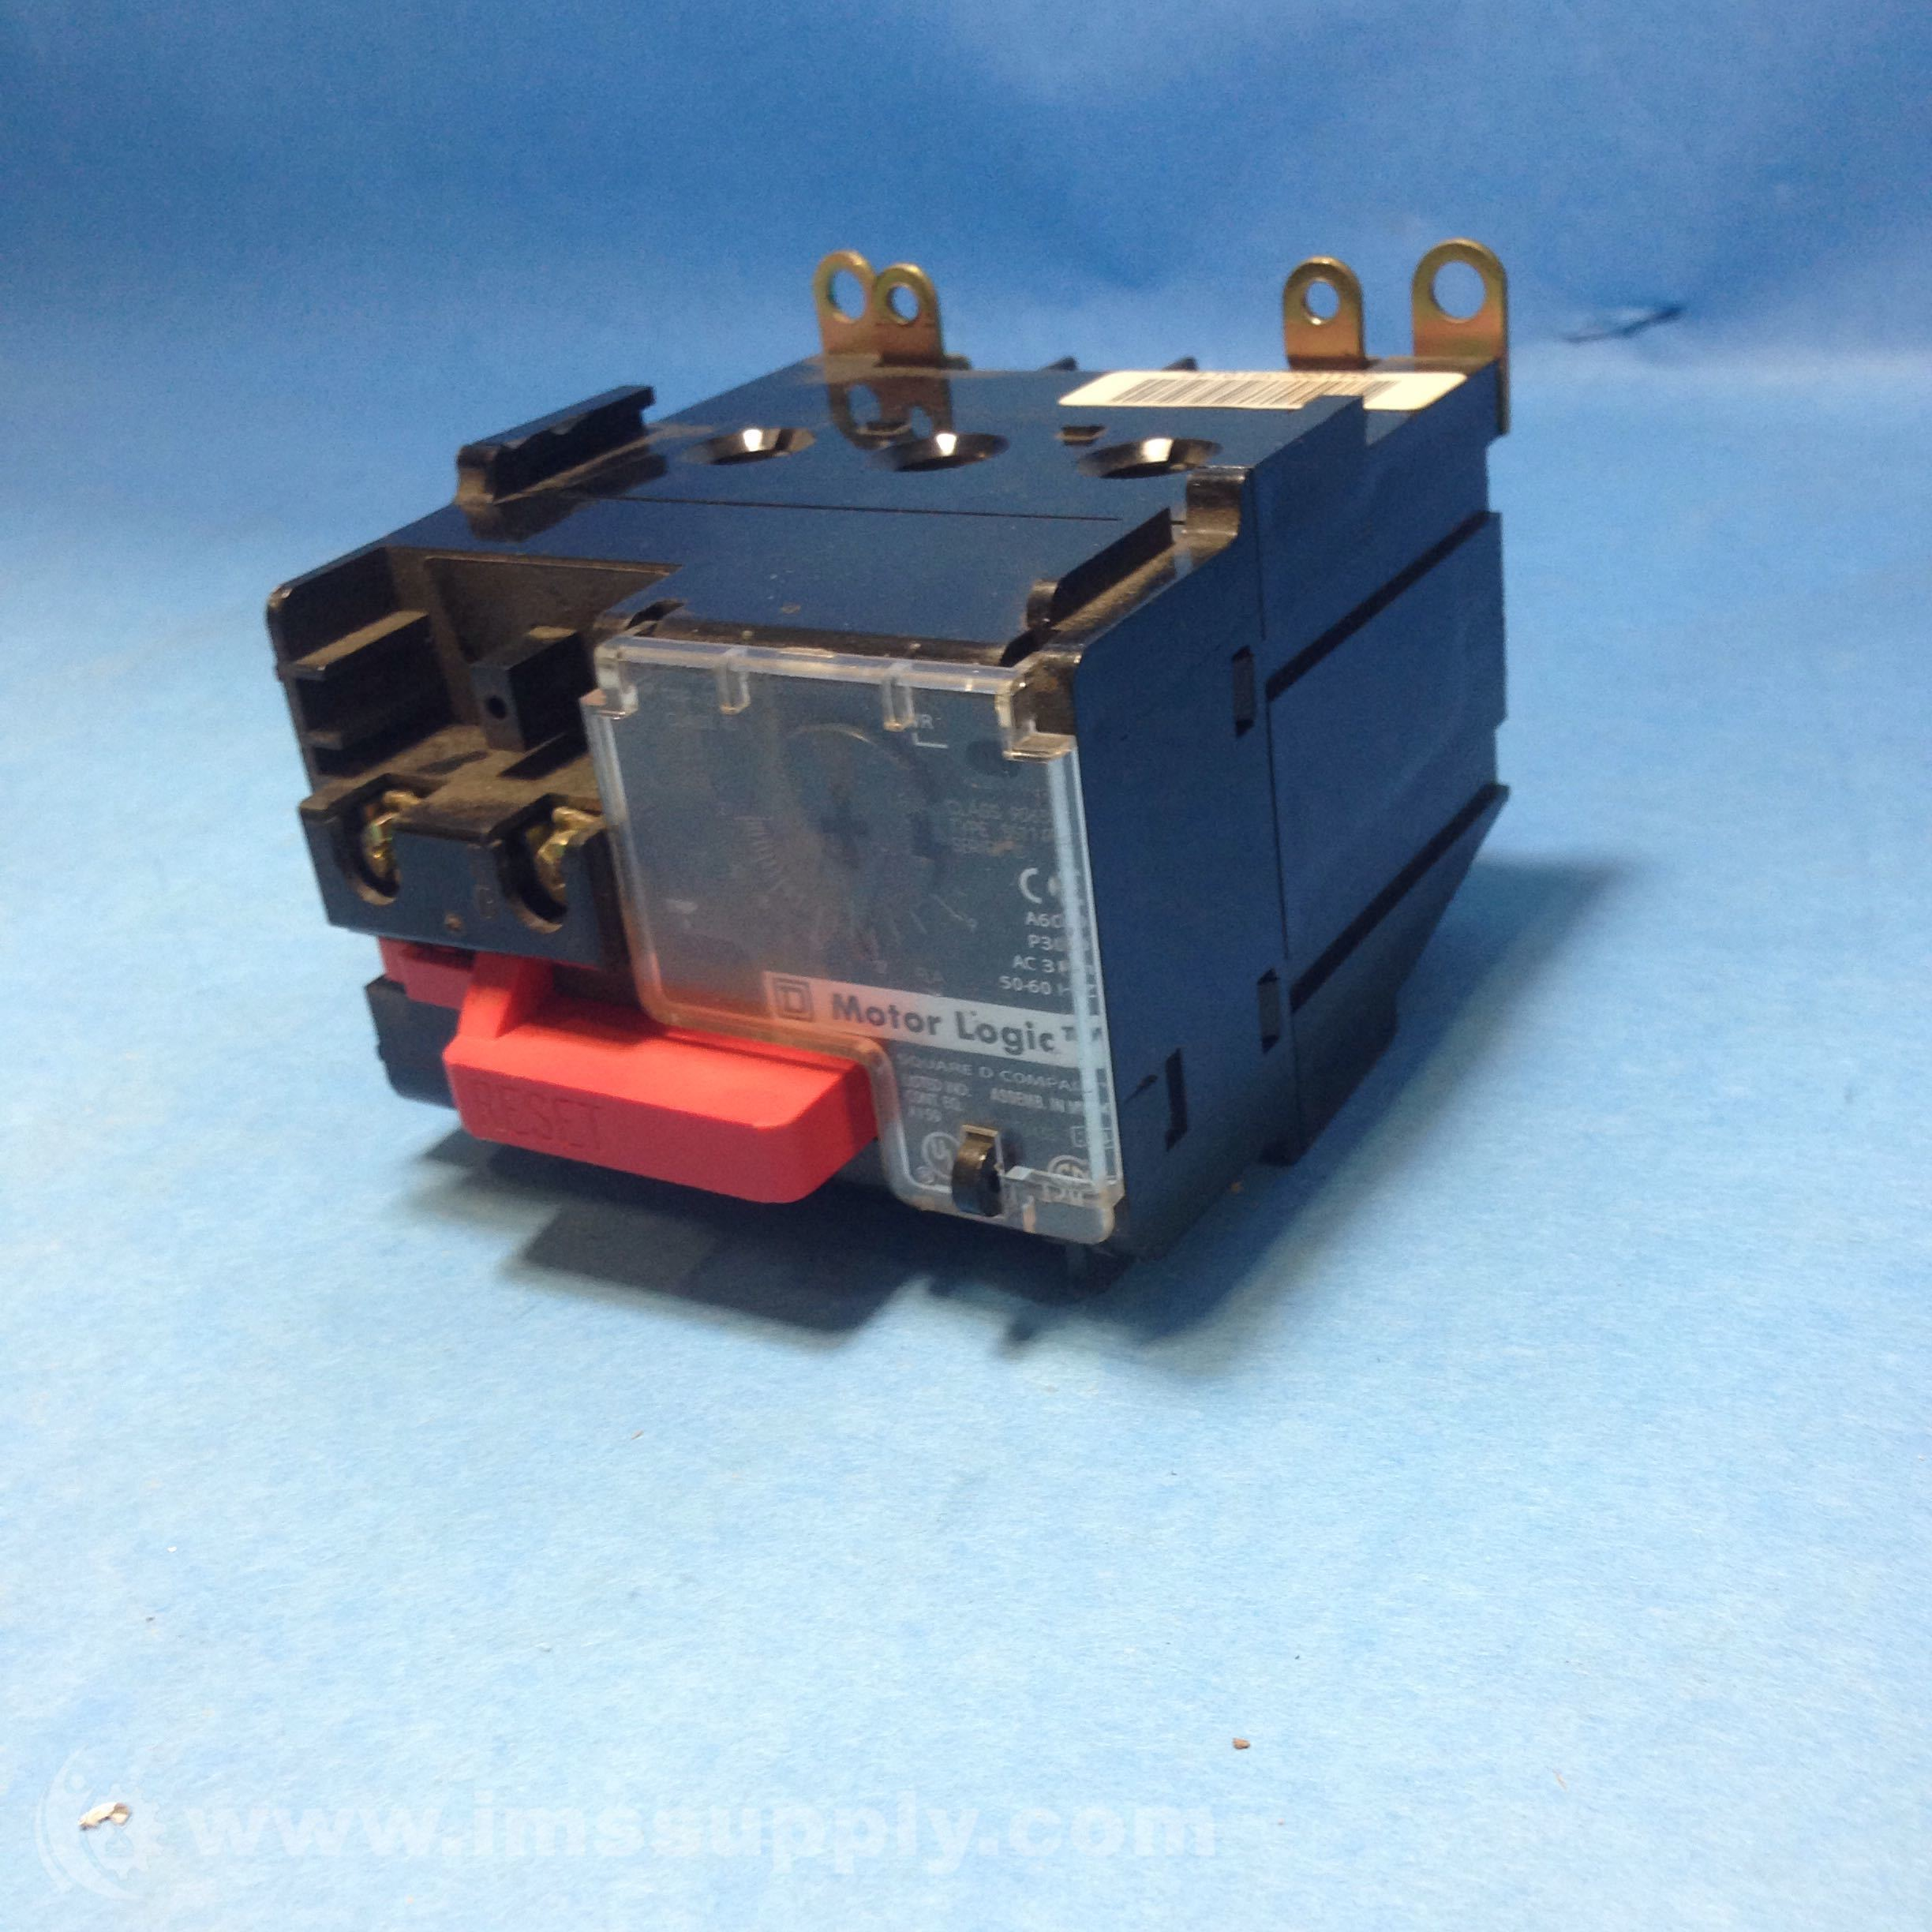 Square d 9065 ss110 solid state overload relay ims supply for Square d motor logic